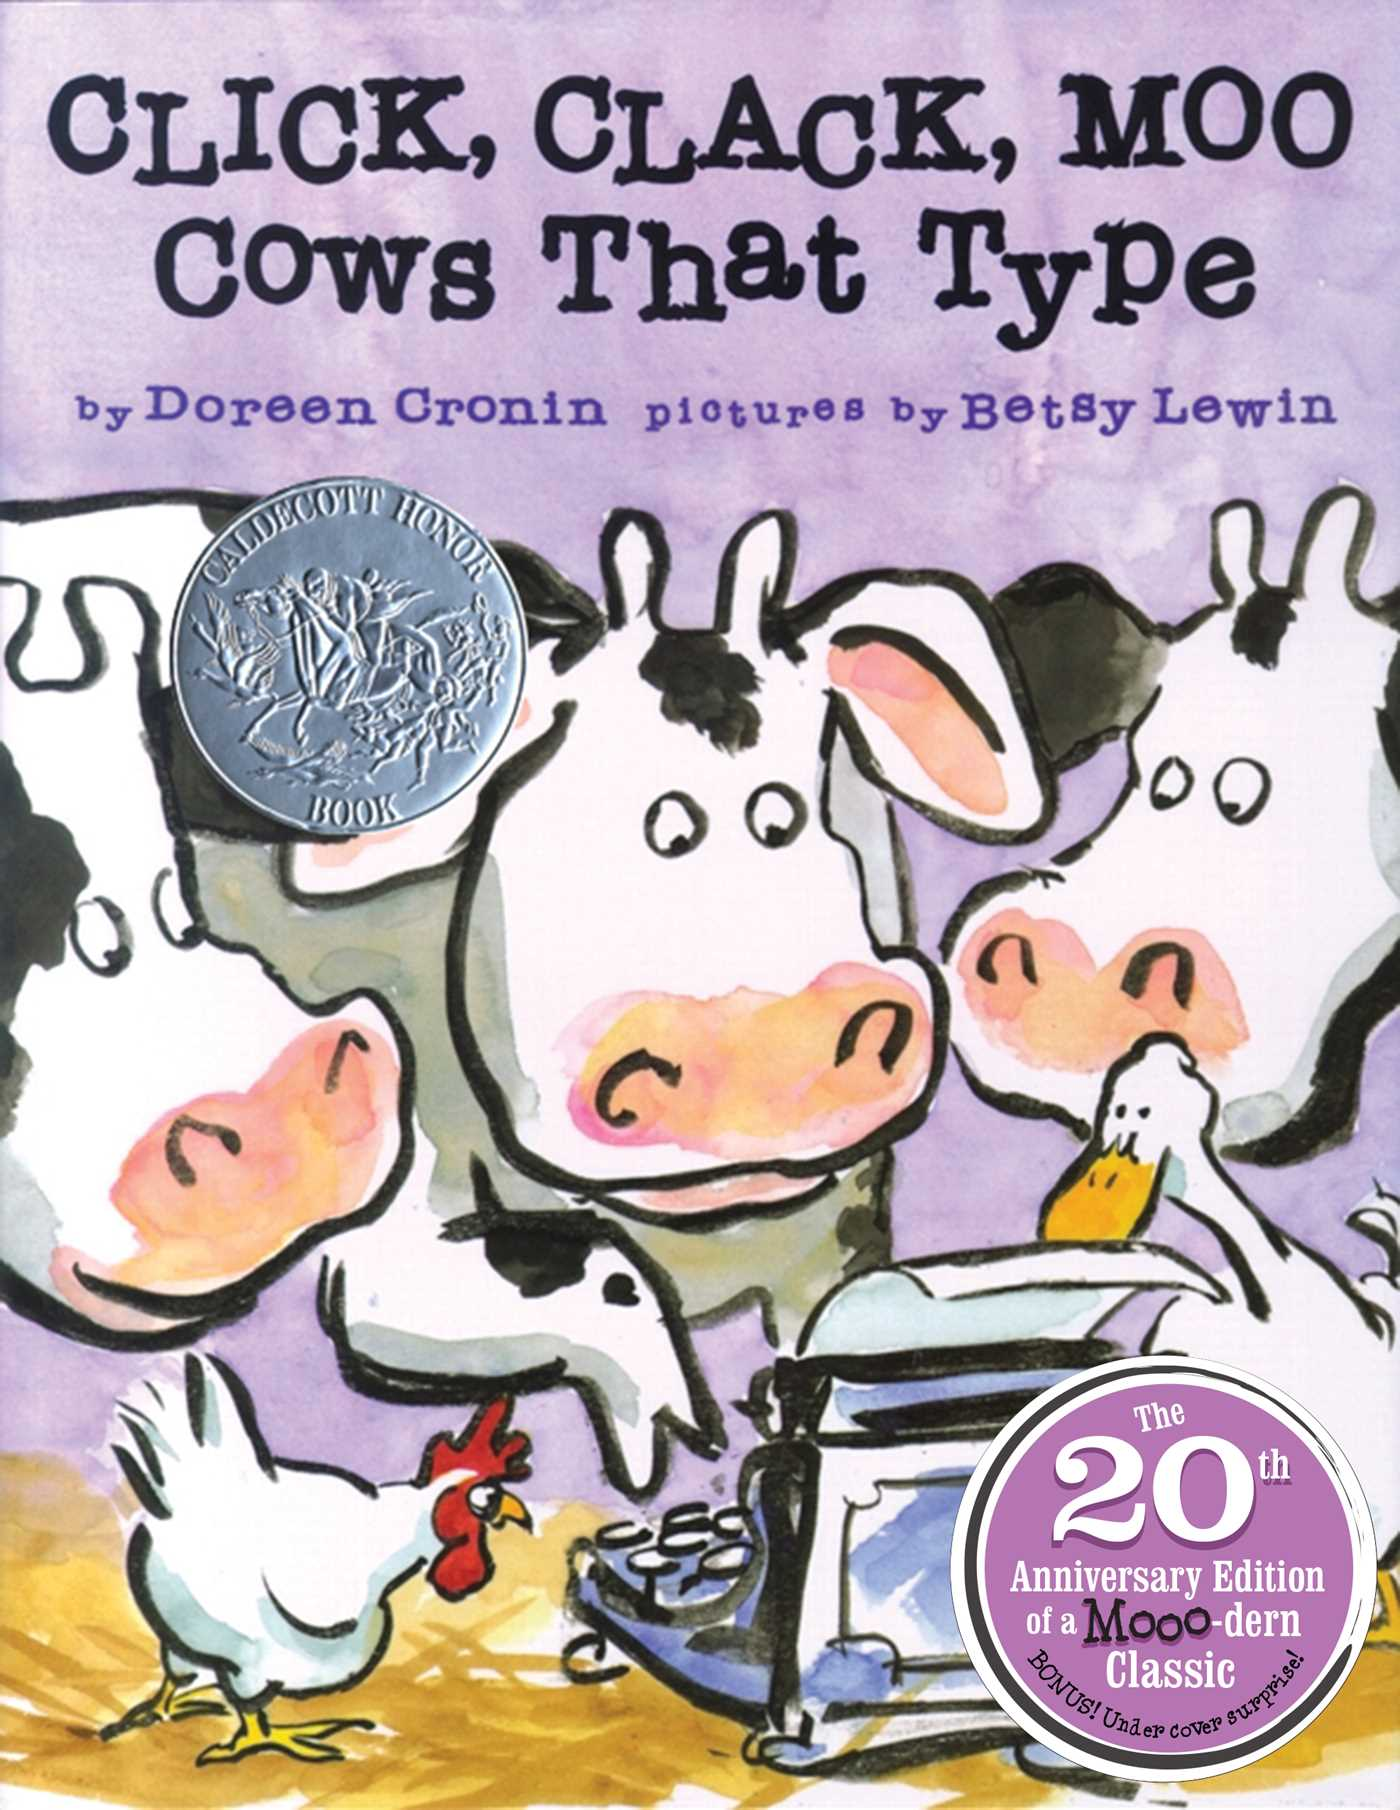 Click, Clack, Moo 20th Anniversary Edition: Cows That Type